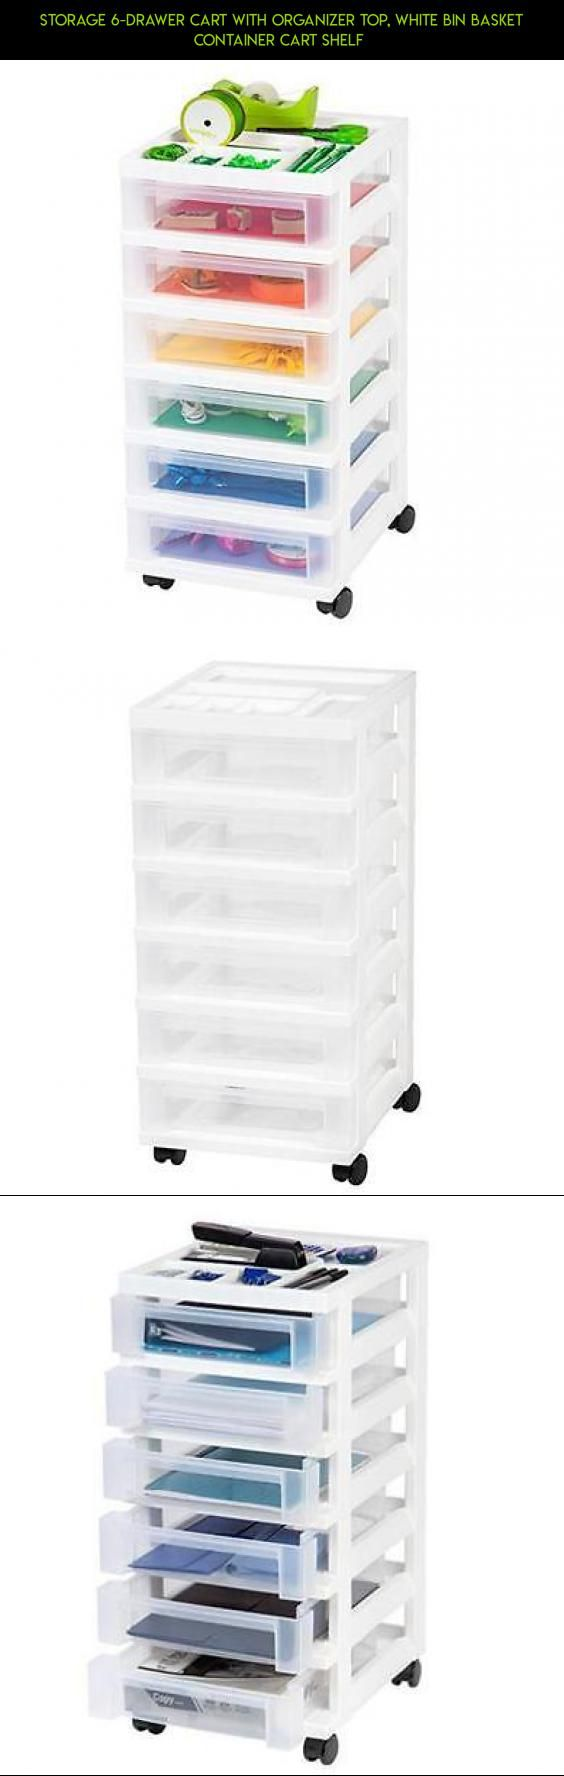 White tilt out clothes storage basket bin bathroom drawer ebay - Storage 6 Drawer Cart With Organizer Top White Bin Basket Container Cart Shelf